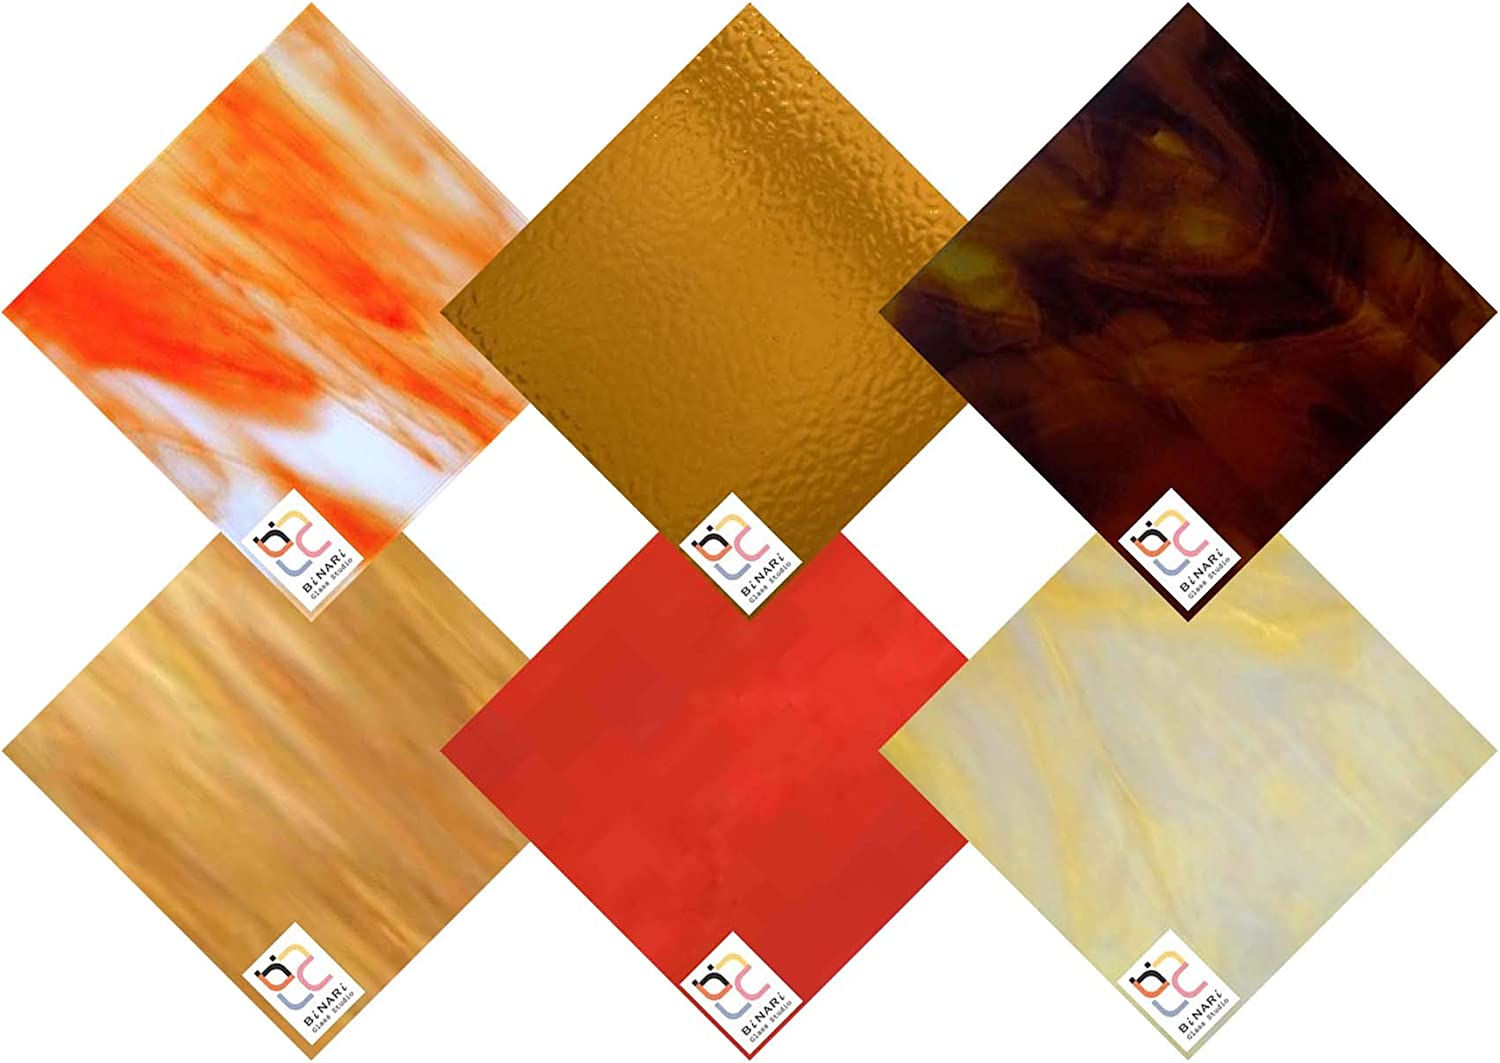 Wissmach 6 Sheet Mixed Color Excellent Autumn Stained Variety Glass Pack Popular brand